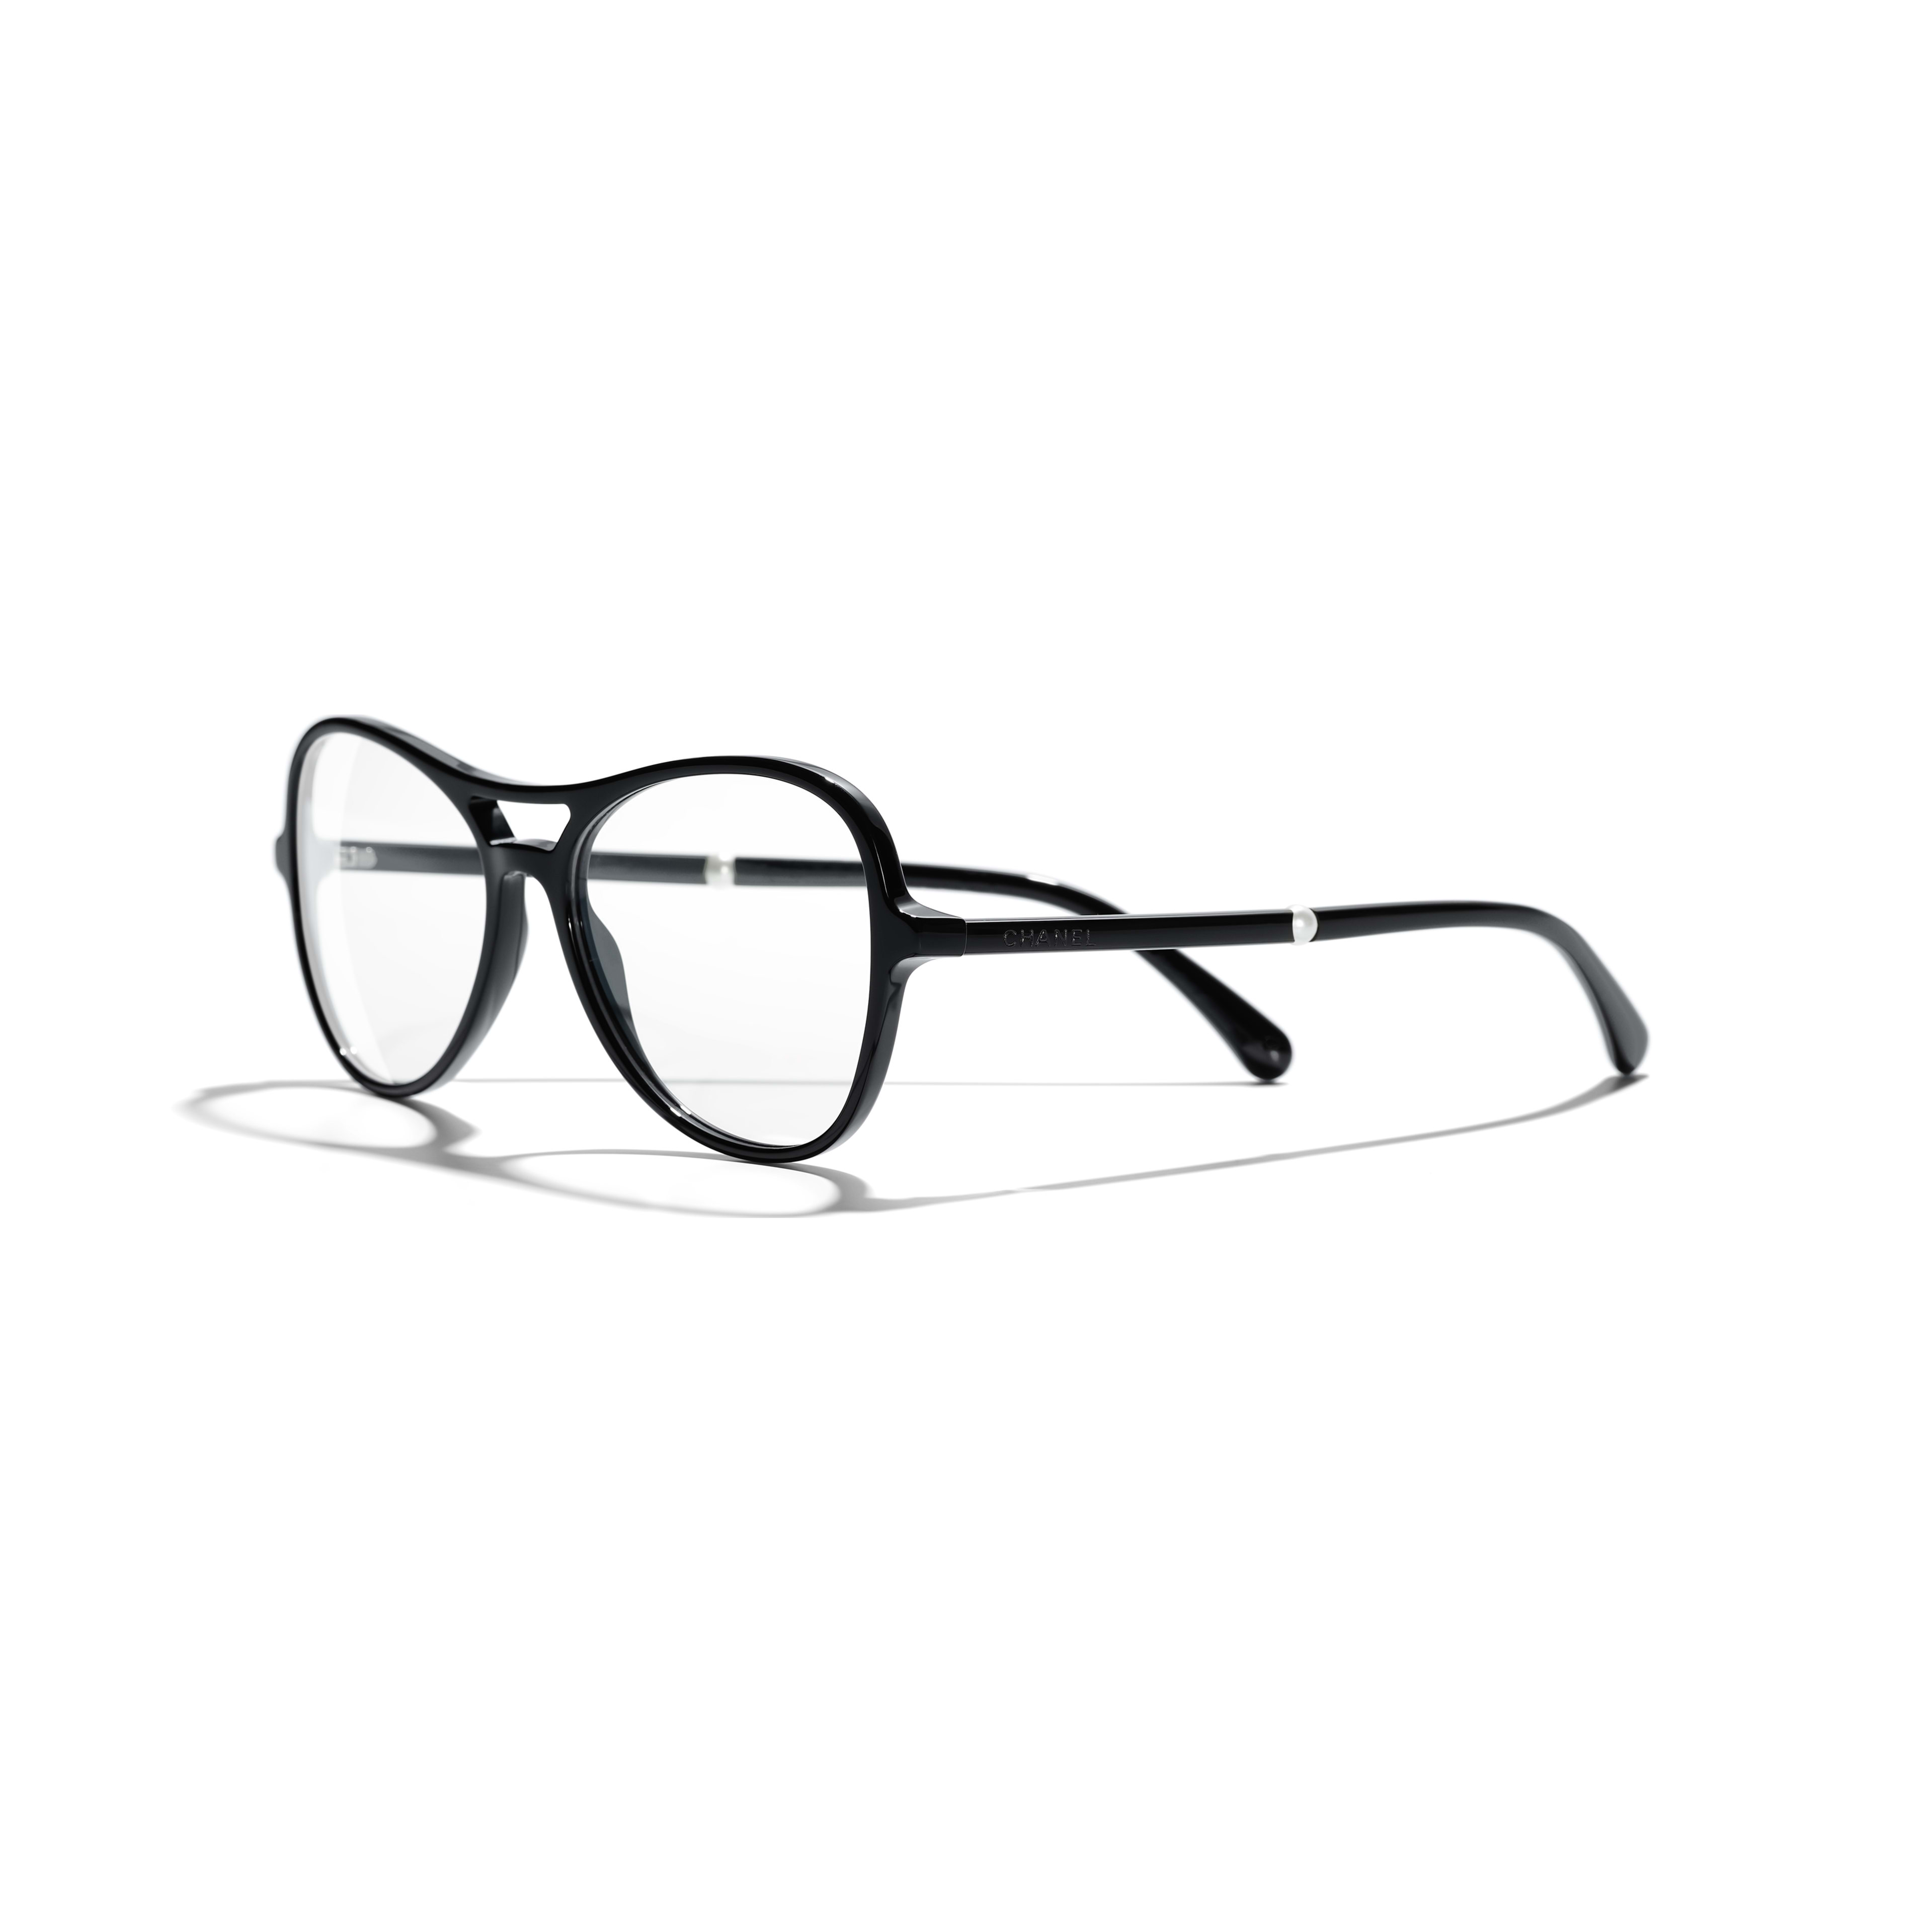 Pilot Eyeglasses - Black - Acetate & Imitation Pearls - Extra view - see standard sized version